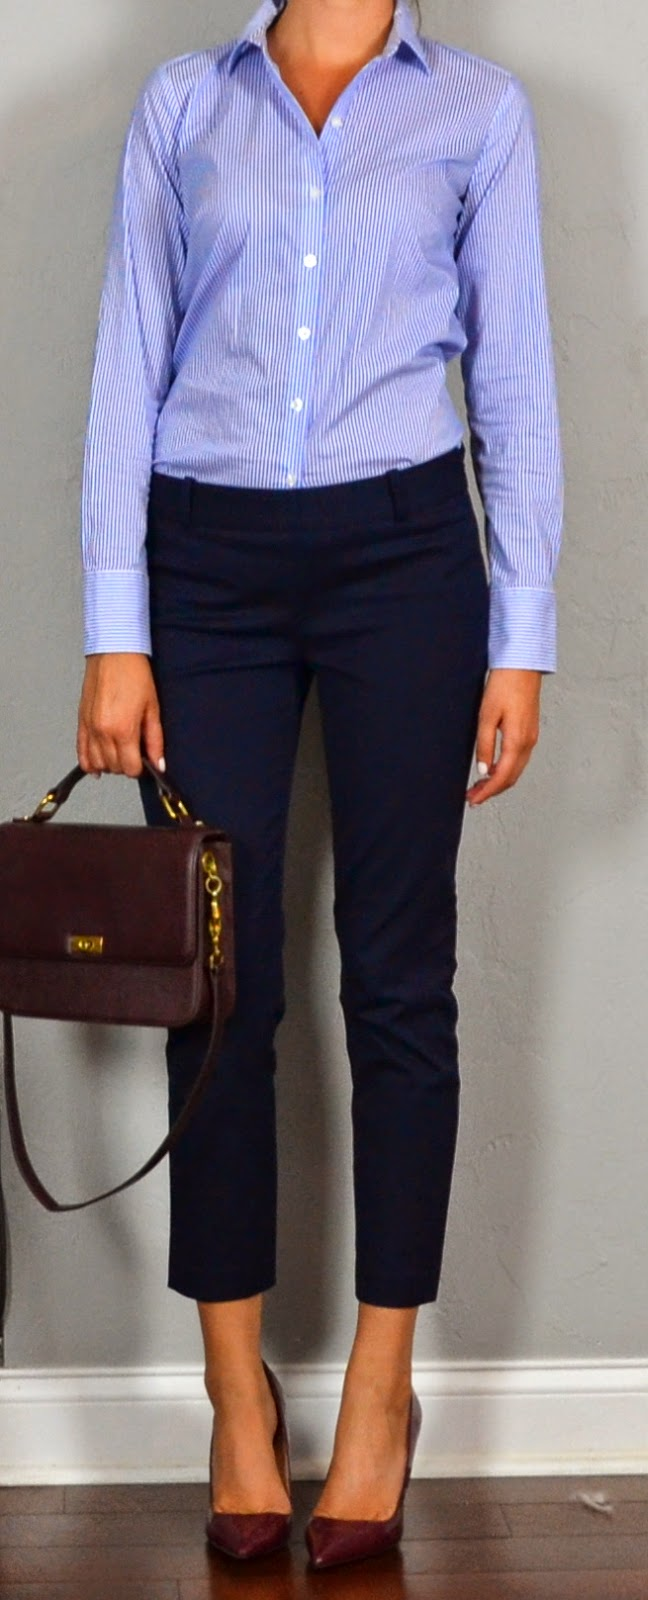 According to GQ, it is acceptable to wear dark brown shoes with navy pants. A lighter shade of brown, such as tan, is not appropriate, because men's shoes should be at least as dark as their pants. Refusing to combine dark browns and blues is considered outdated.